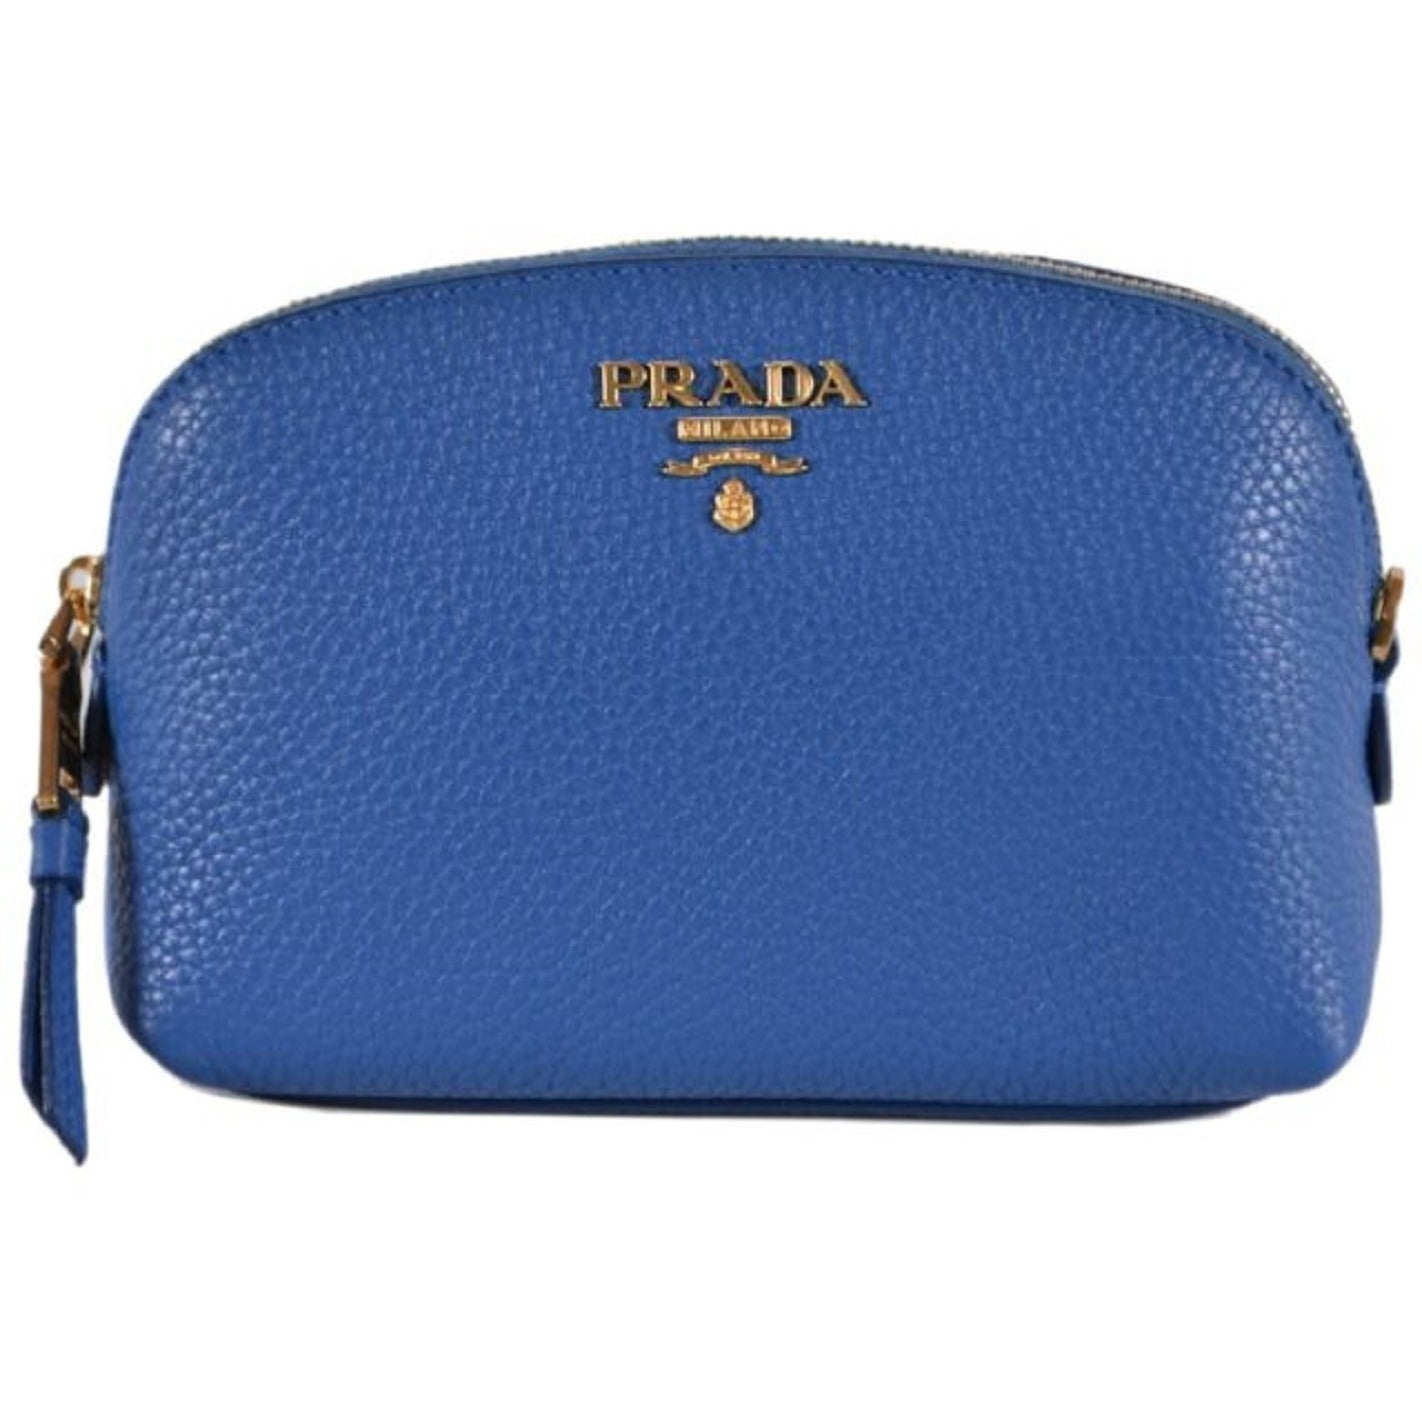 Prada Contenitore Cobalto Blue Vitello Daino Vanity Cosmetic Case 1ND005